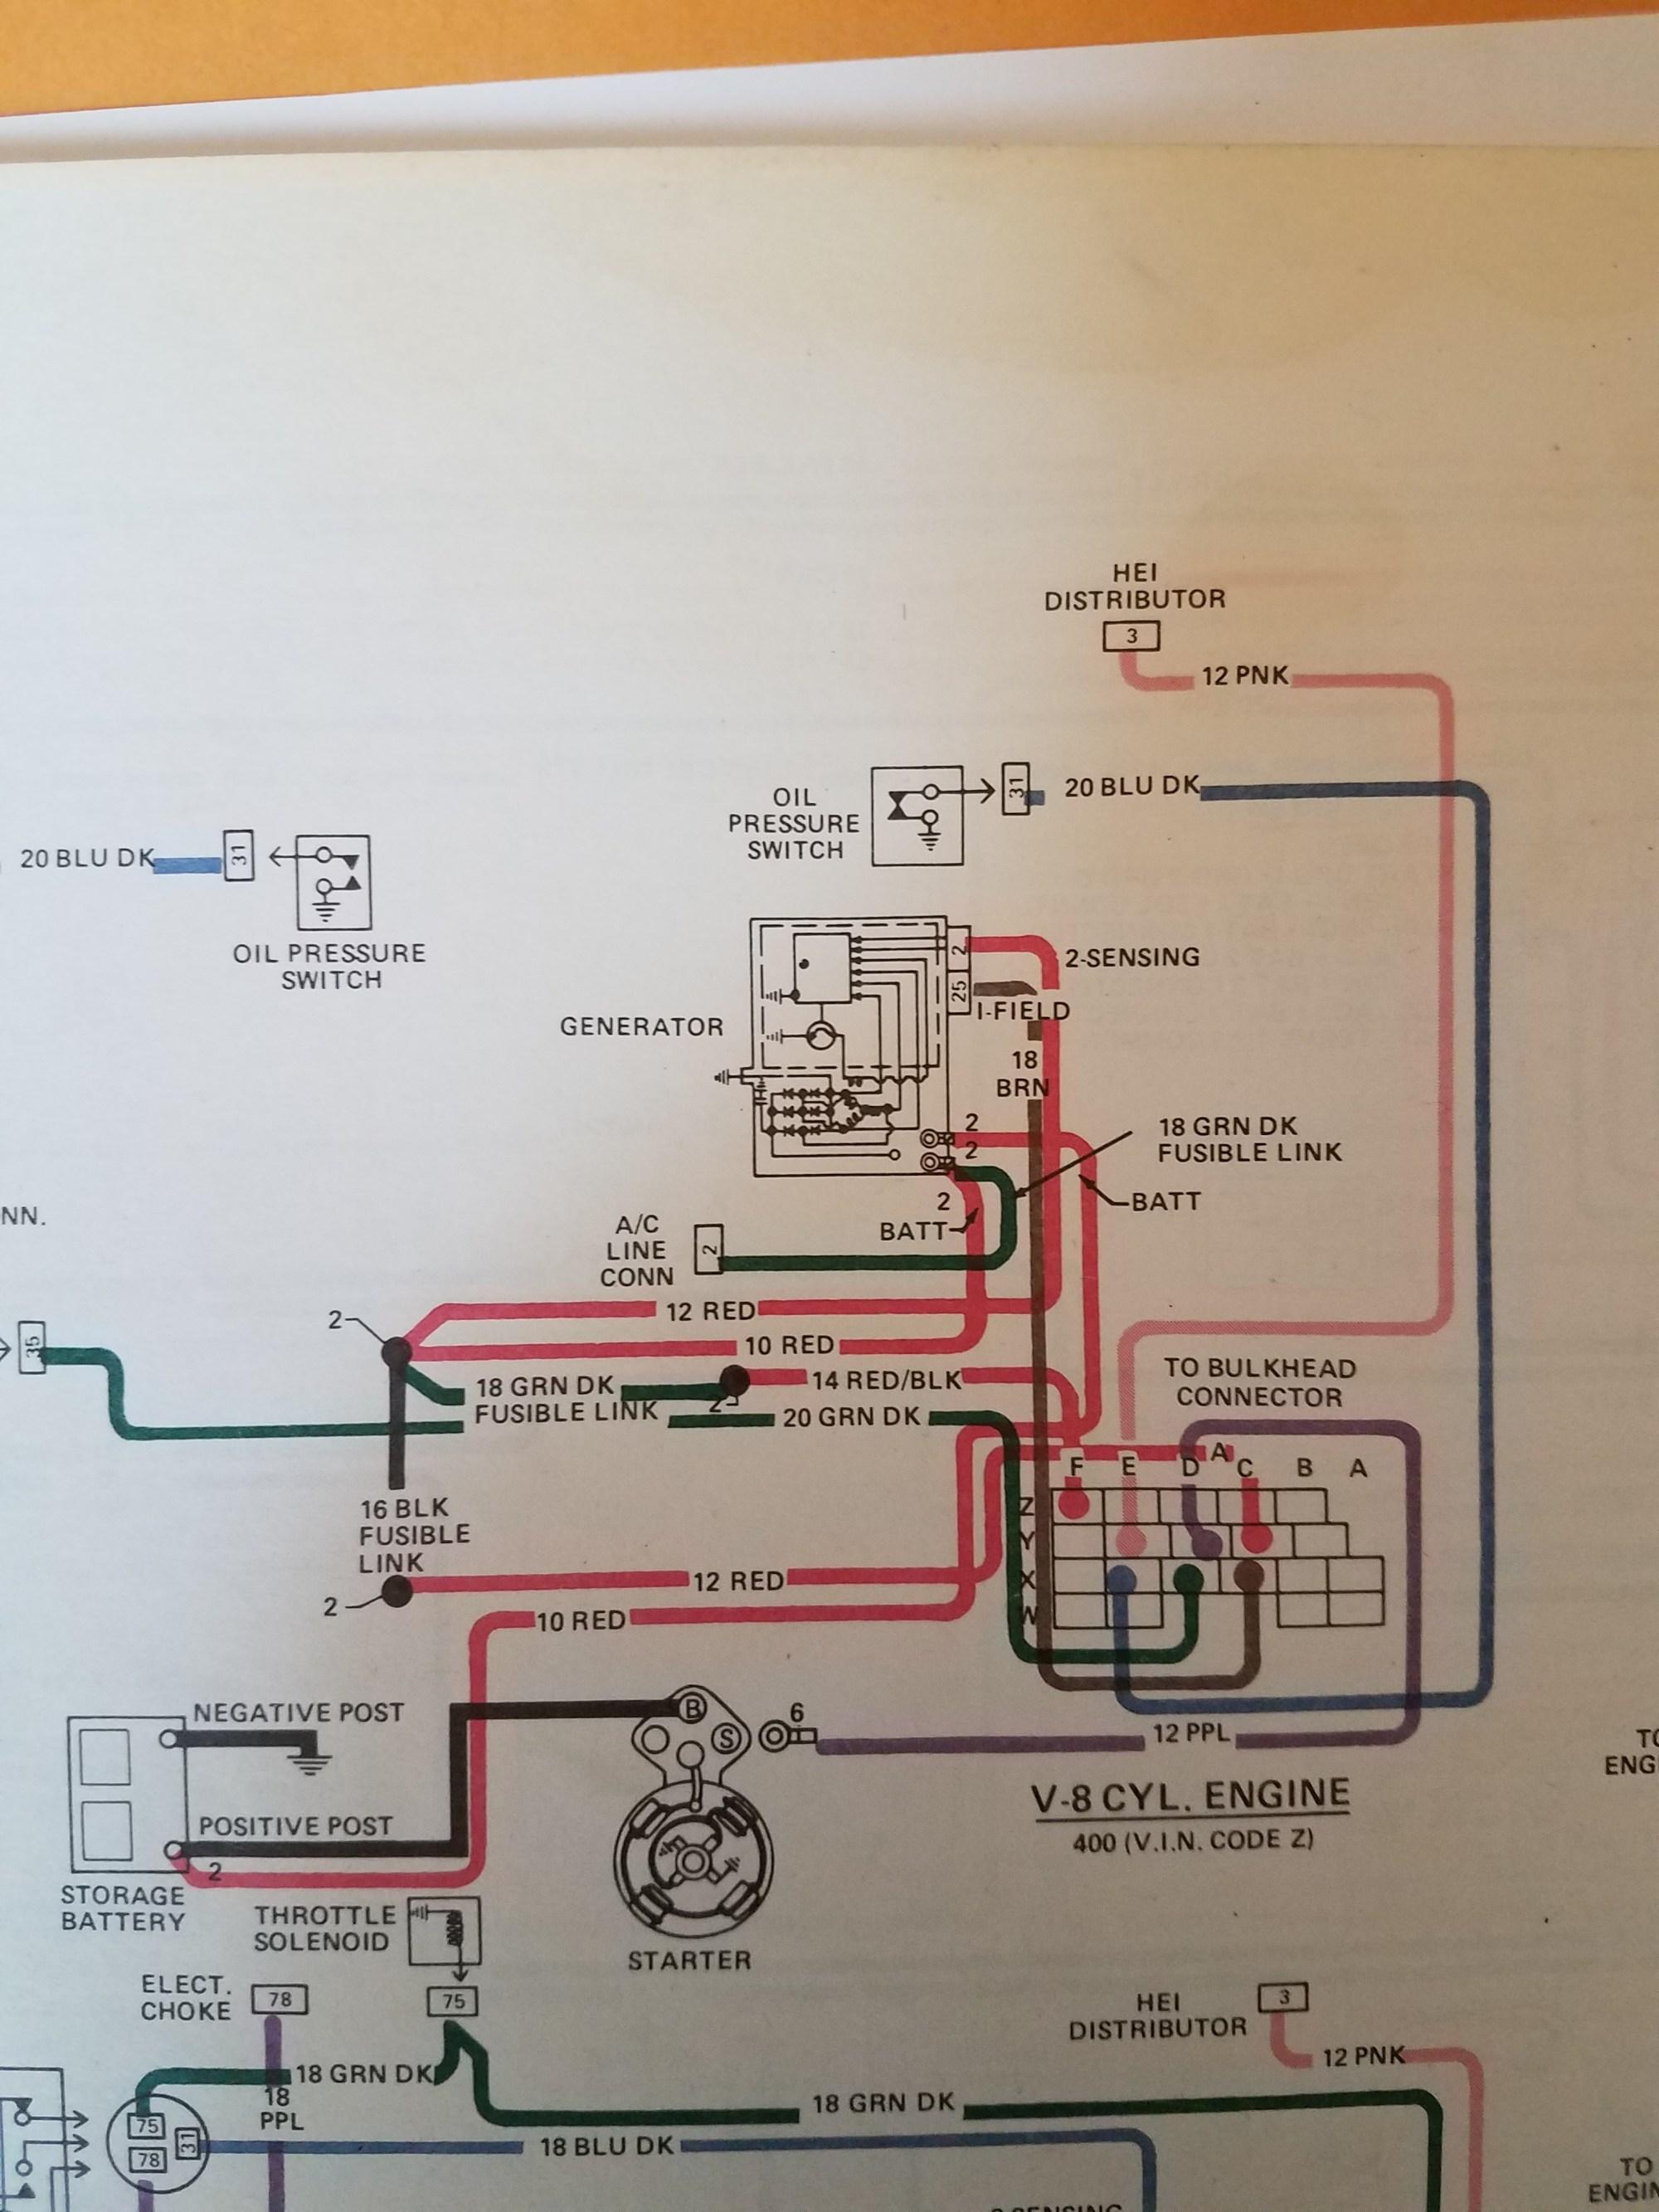 hight resolution of 1980 trans am wiring diagram wiring diagram paper 79 trans am gauge wiring diagram 1980 trans